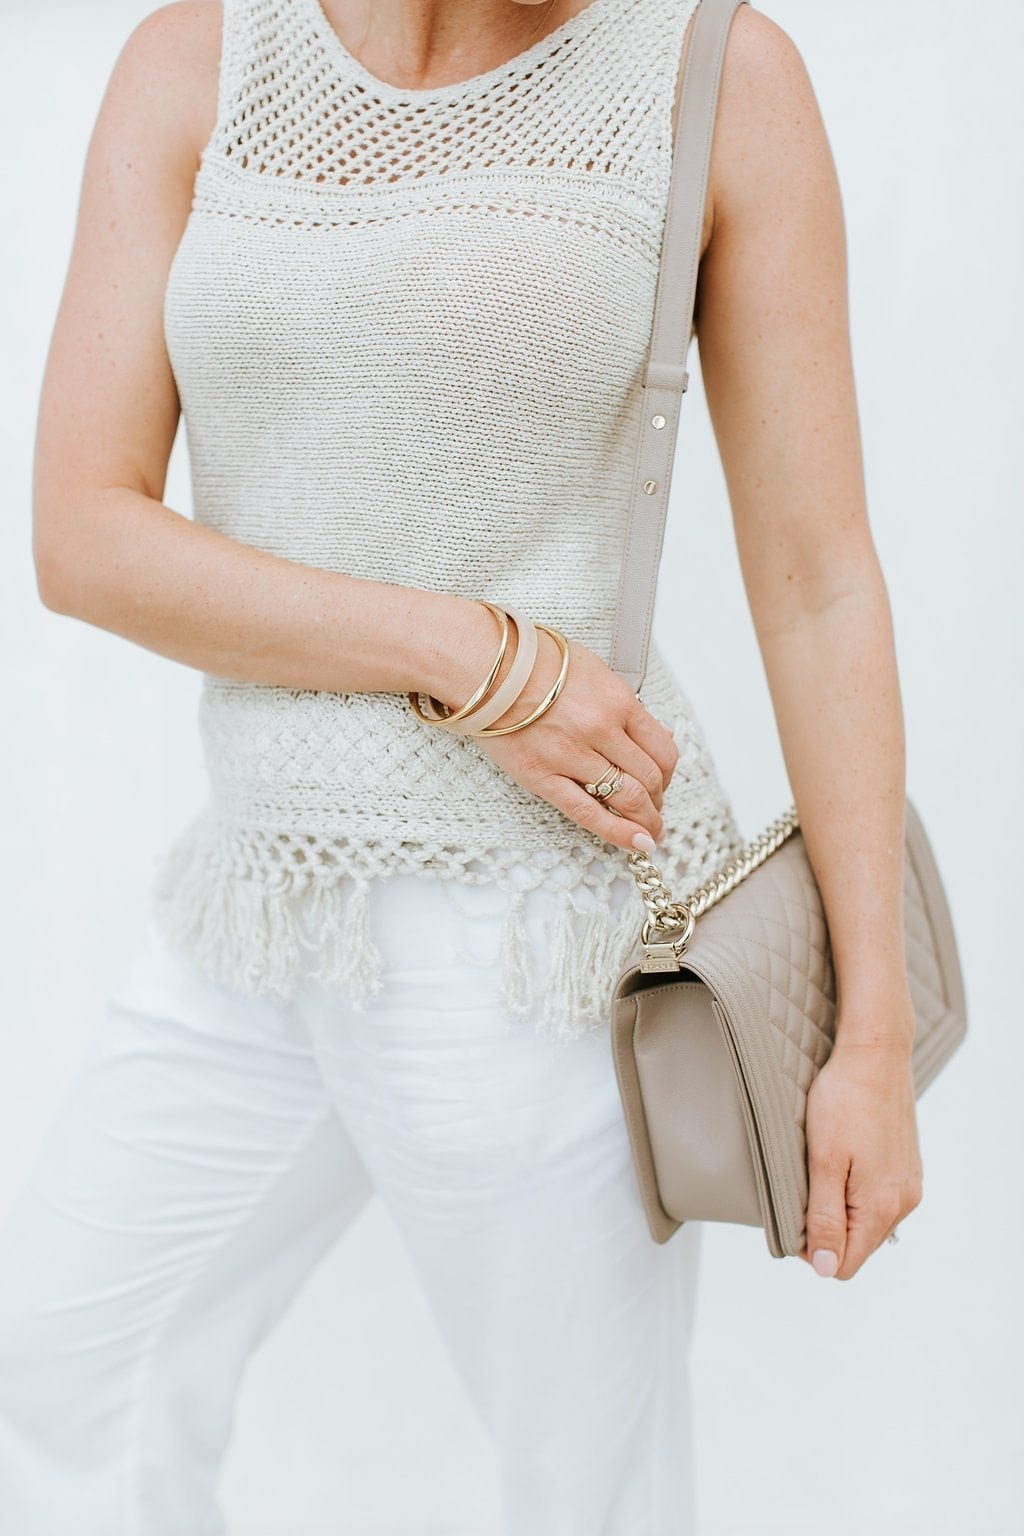 Gold fringe sweater with neutral Chanel Boy bag and gold and nude bangle bracelets. White and gold summer outfit for family photos.